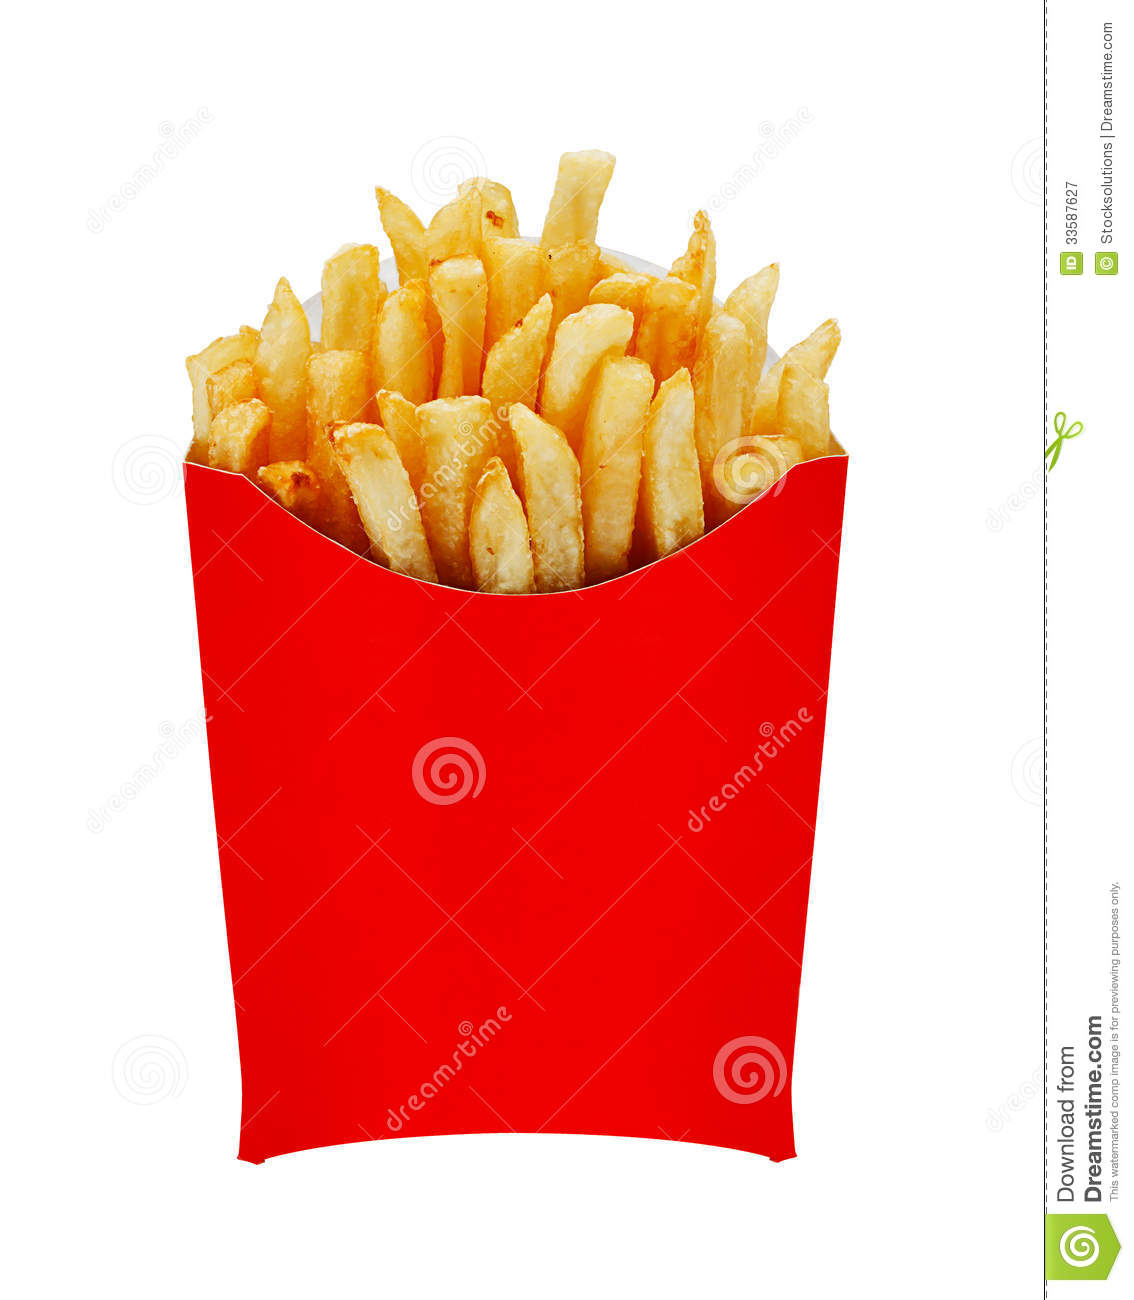 medium fries in box isolated on white stock image image. Black Bedroom Furniture Sets. Home Design Ideas